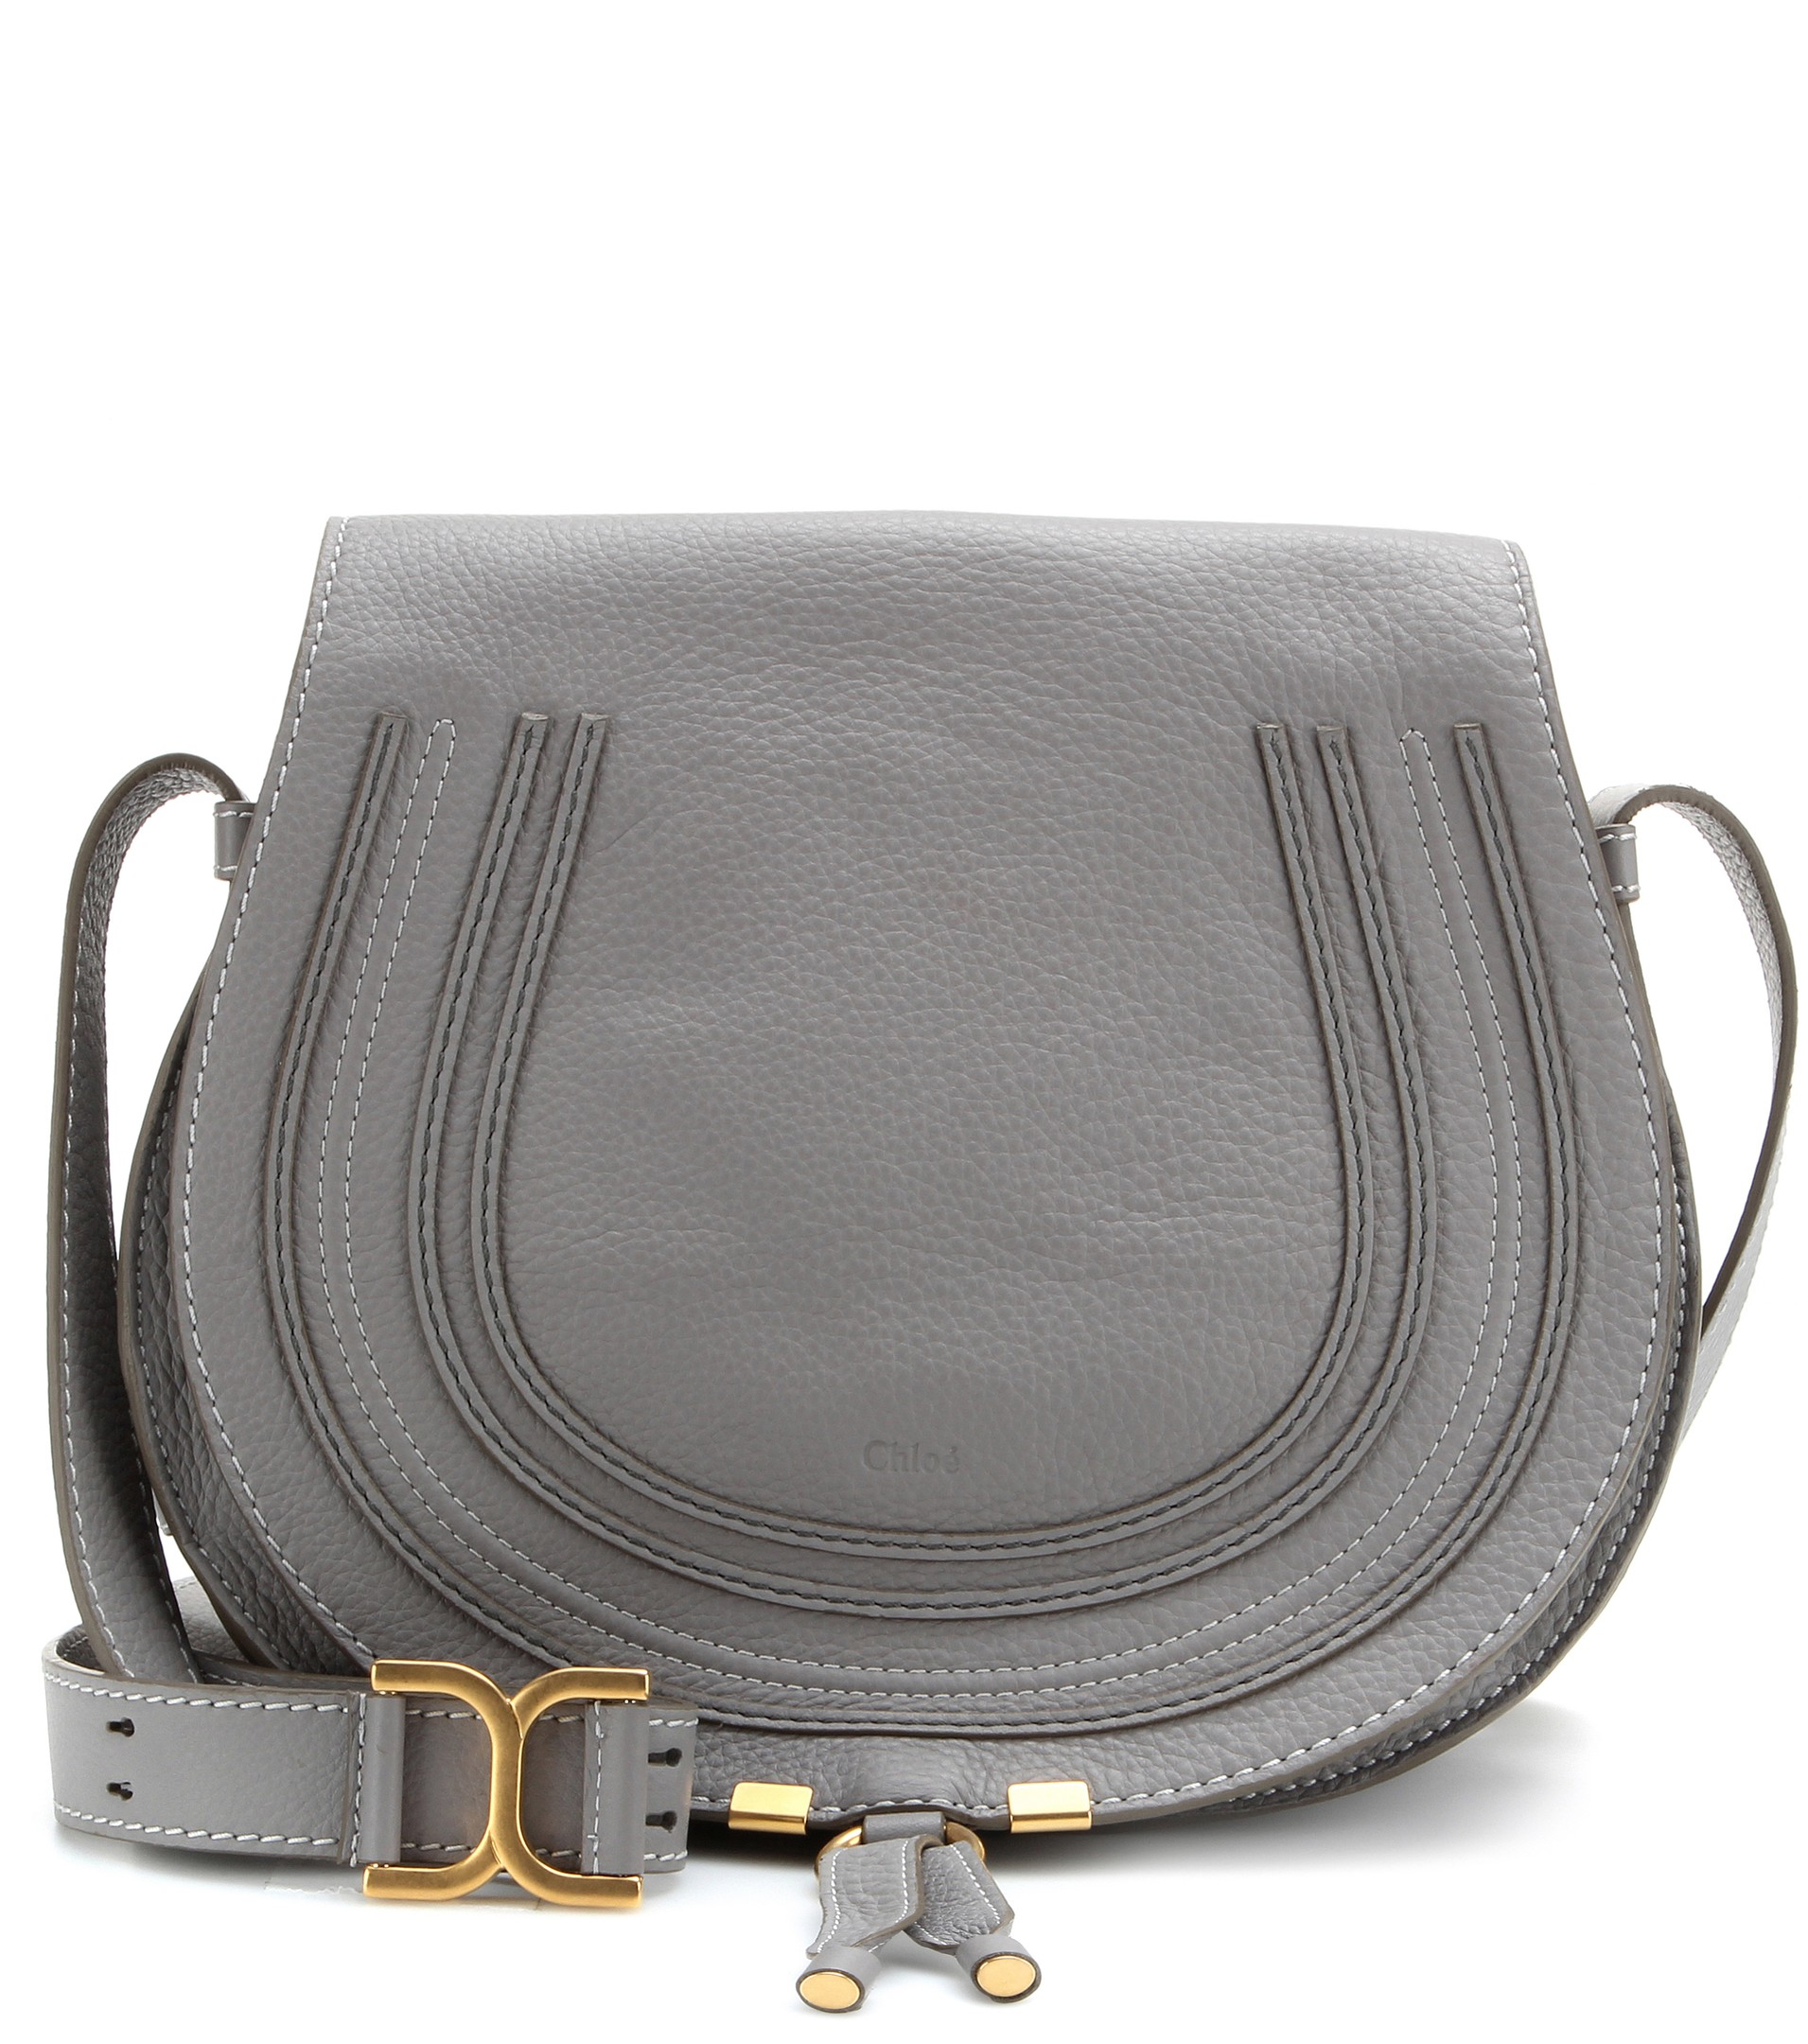 8fbe634a4494 Lyst - Chloé Marcie Leather Crossbody Bag in Gray